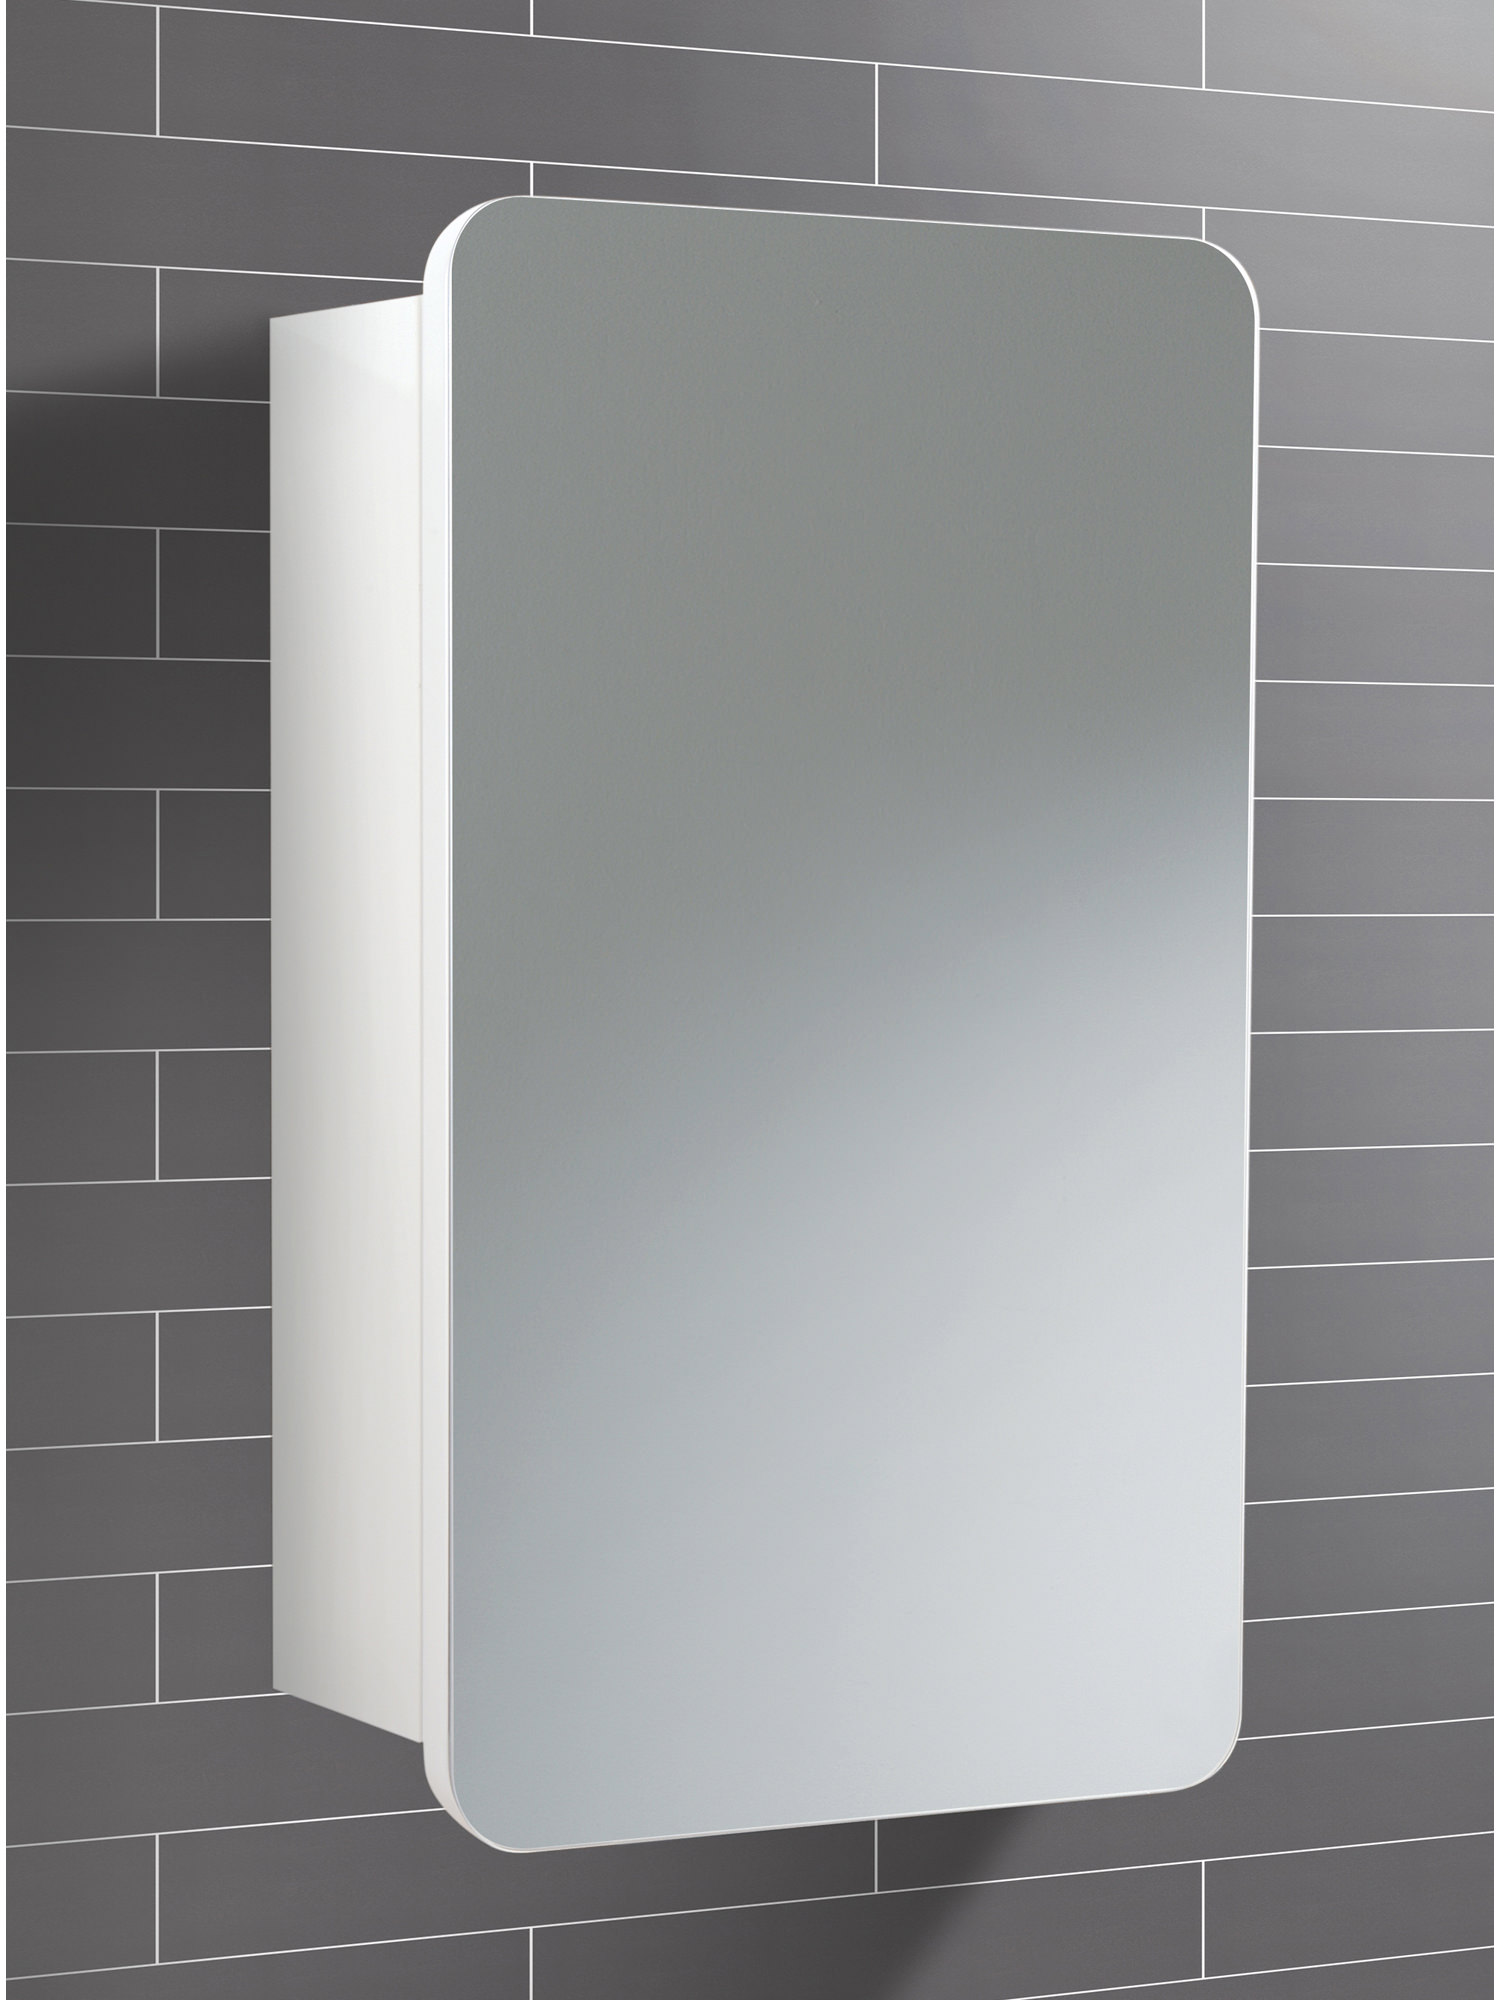 Shop For Bathroom Mirrored Cabinets At Qs Supplies